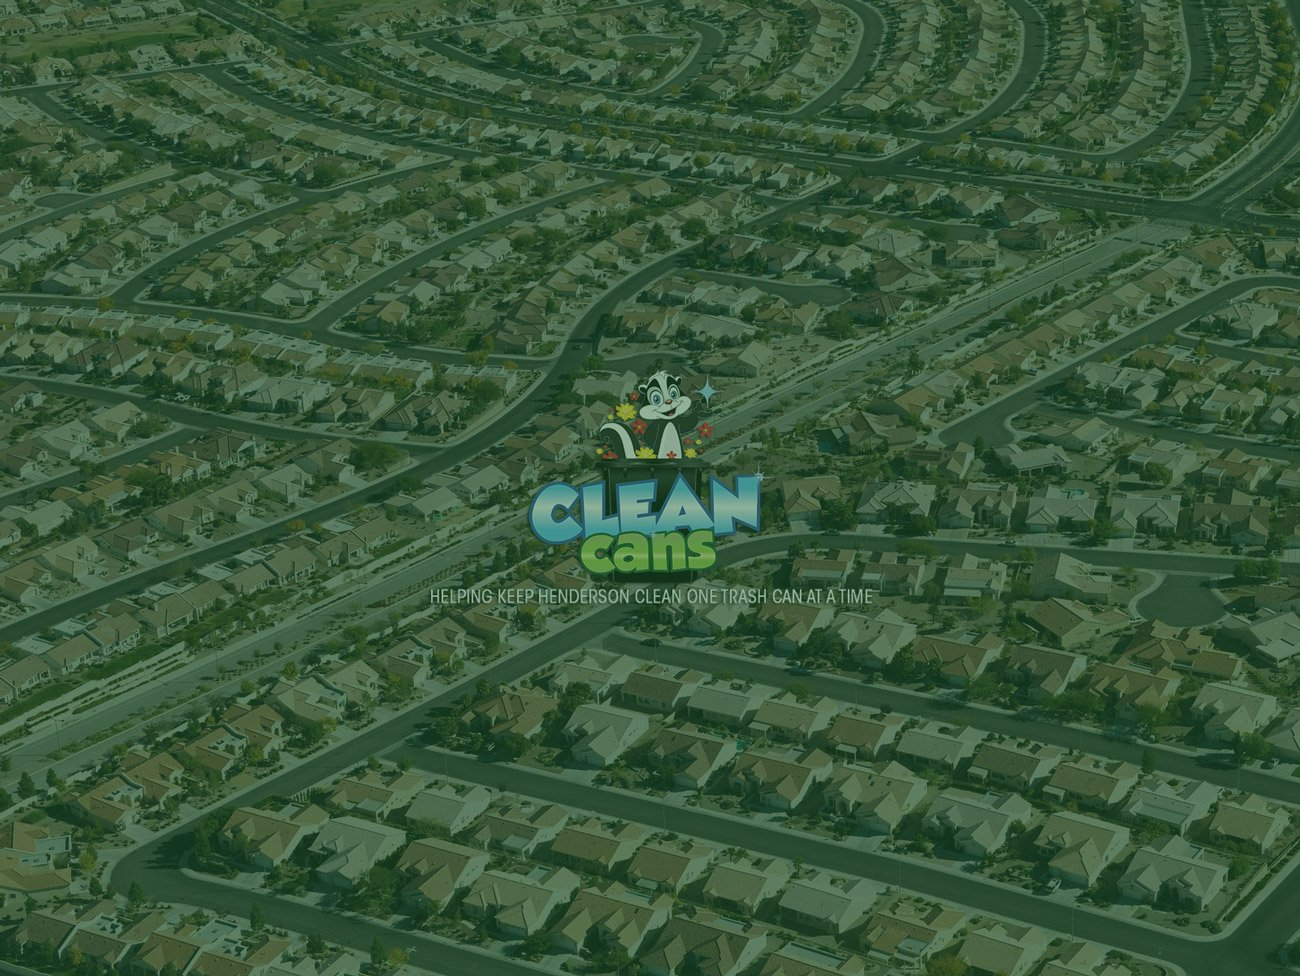 A sky view of a community with Clean Cans Logo in the middle